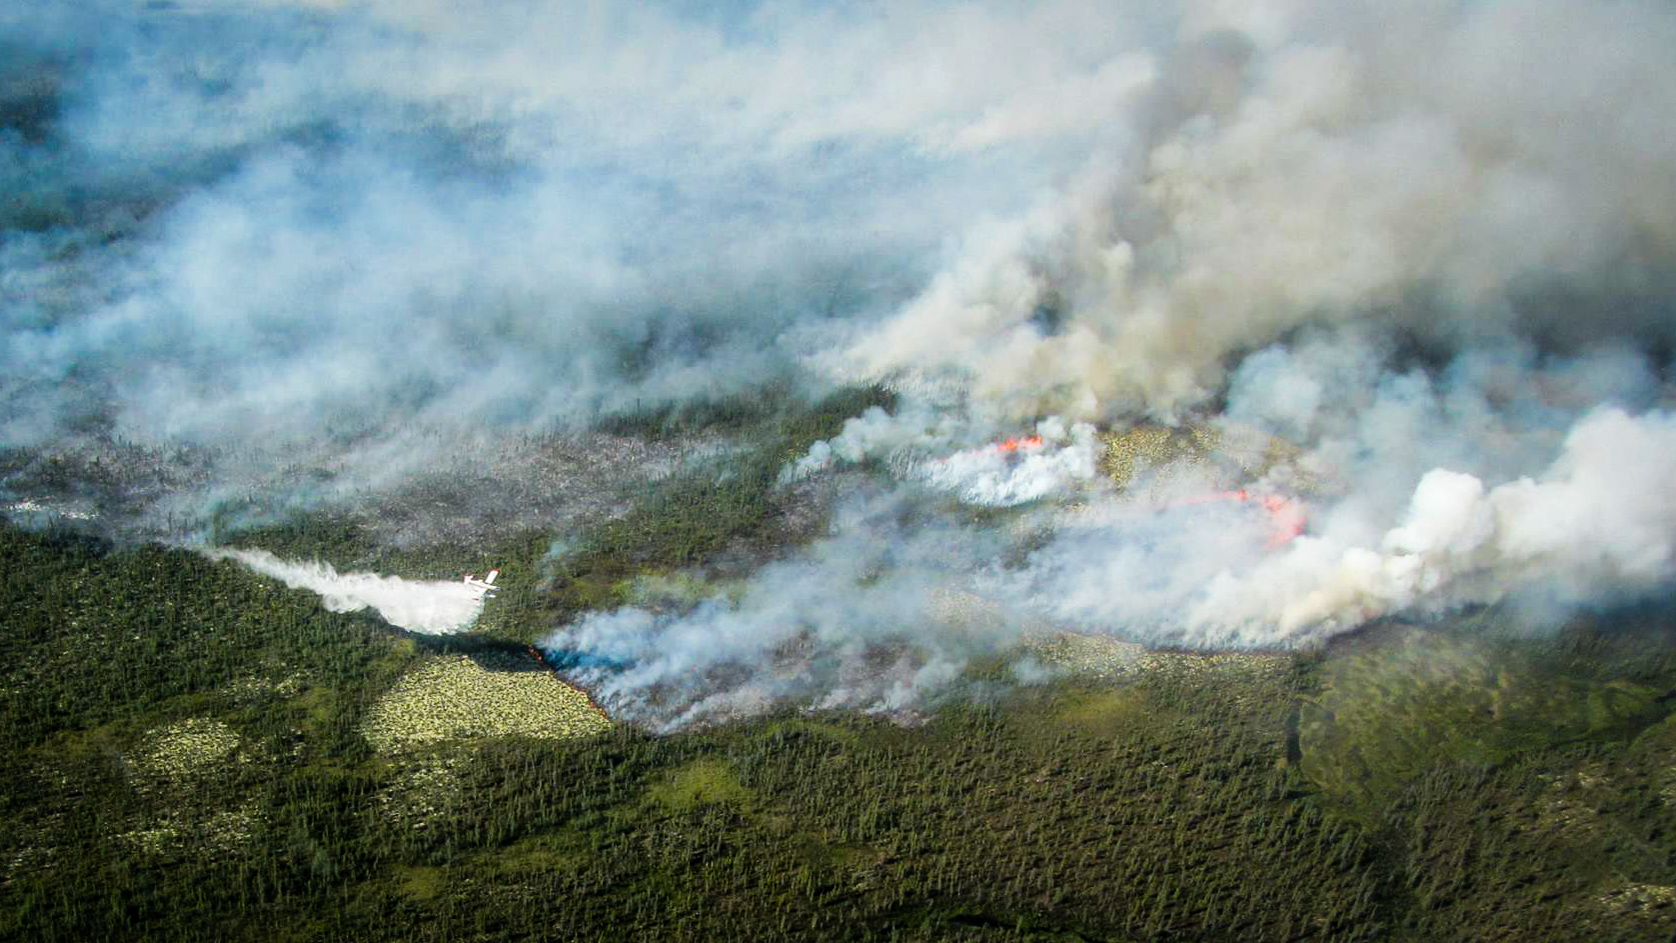 A wildfire burns near Fort Good Hope in an image posted online by the territorial government in July 2017